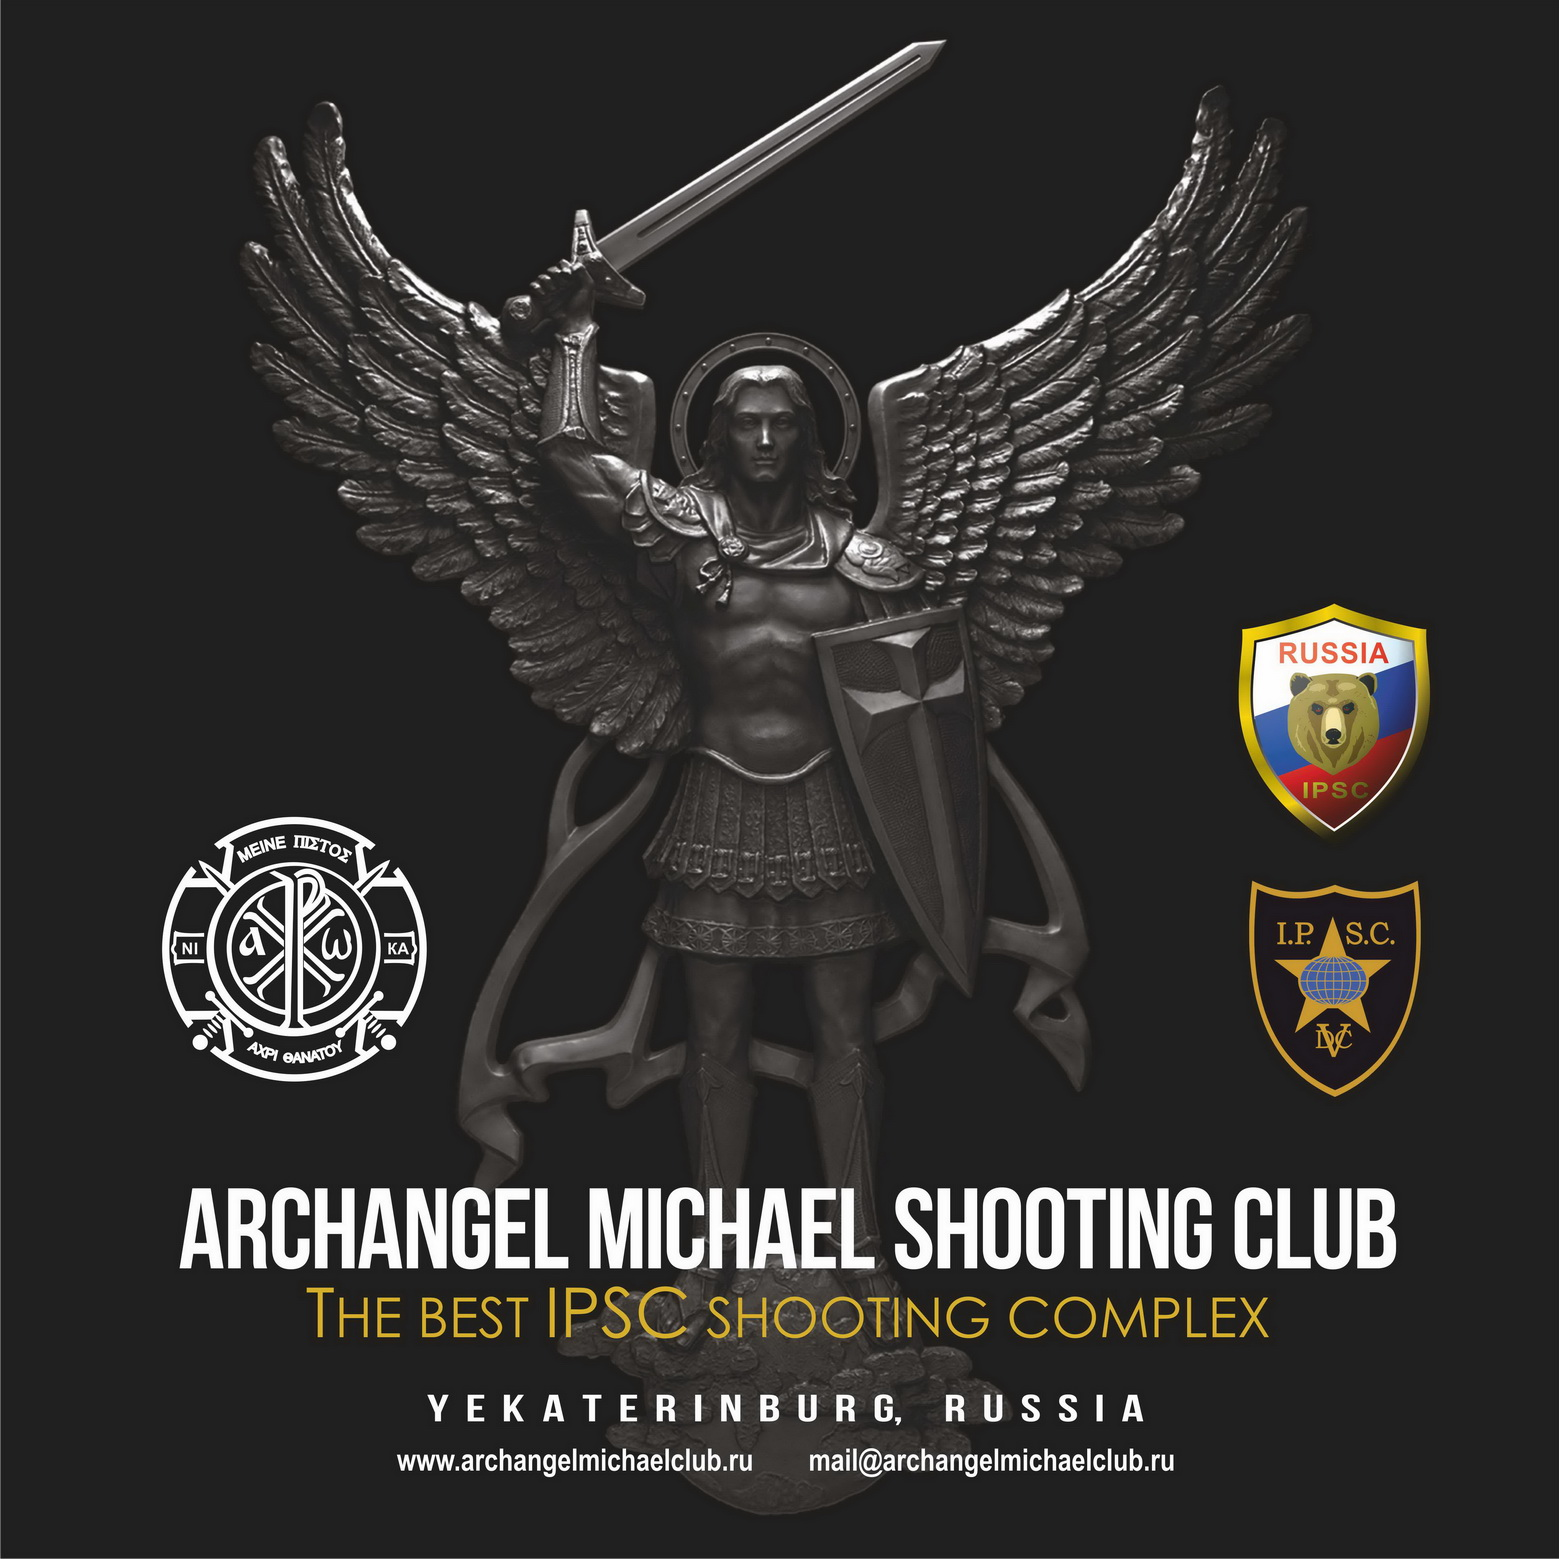 ARCHANGEL MICHAEL SHOOTING CLUB